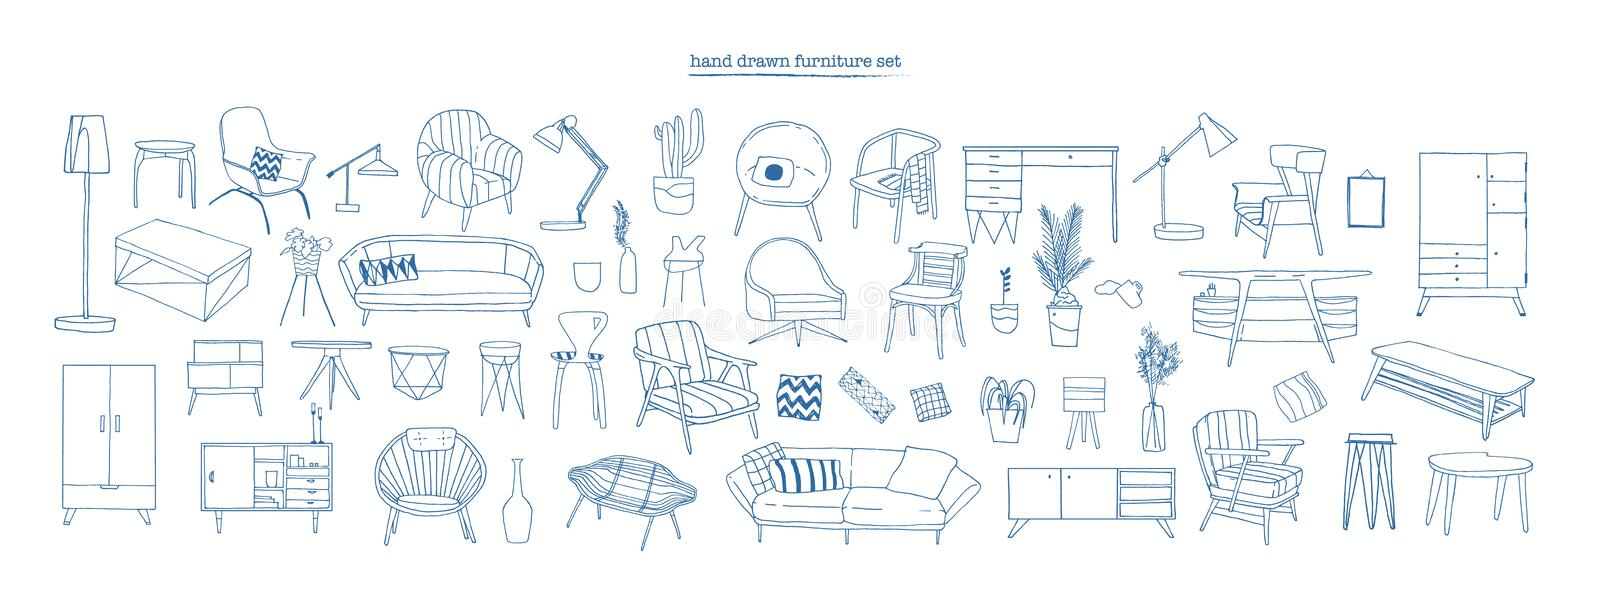 Collection of elegant modern furniture and home interior decorations of trendy Scandinavian or hygge style hand drawn royalty free illustration